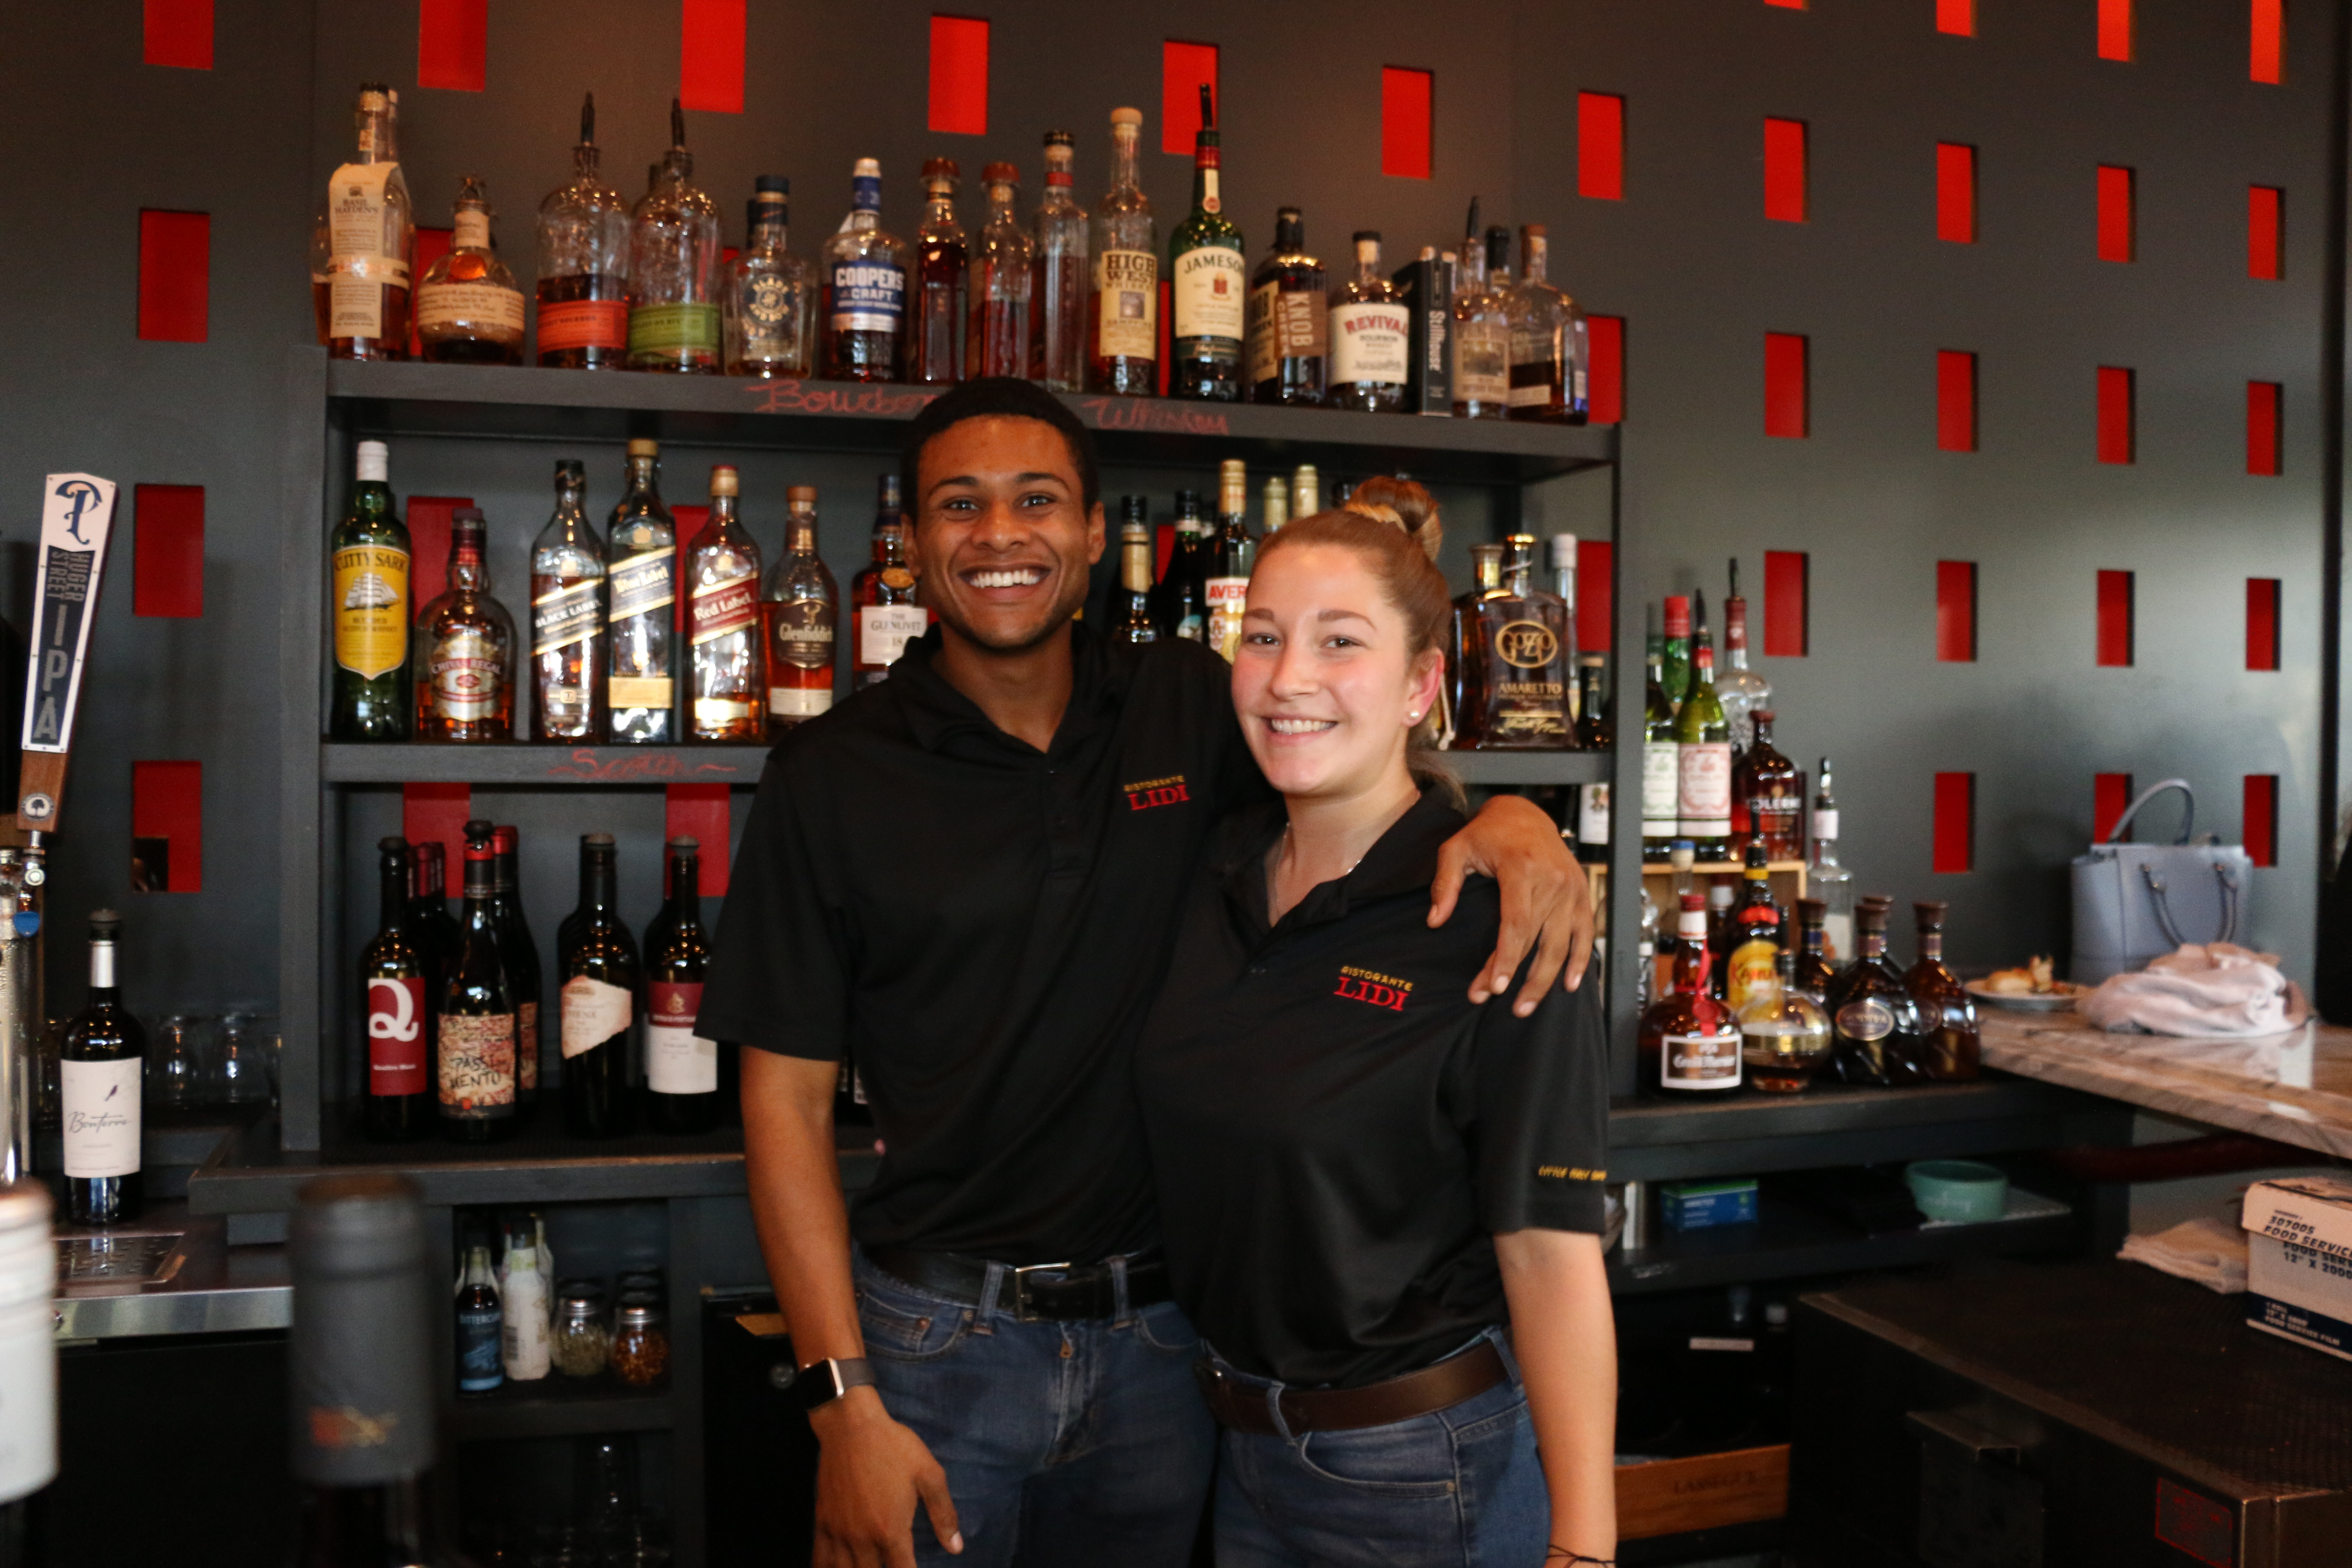 LIDI bartenders Quentin Scrivens and Laura Antonelli serve drinks with a smile.